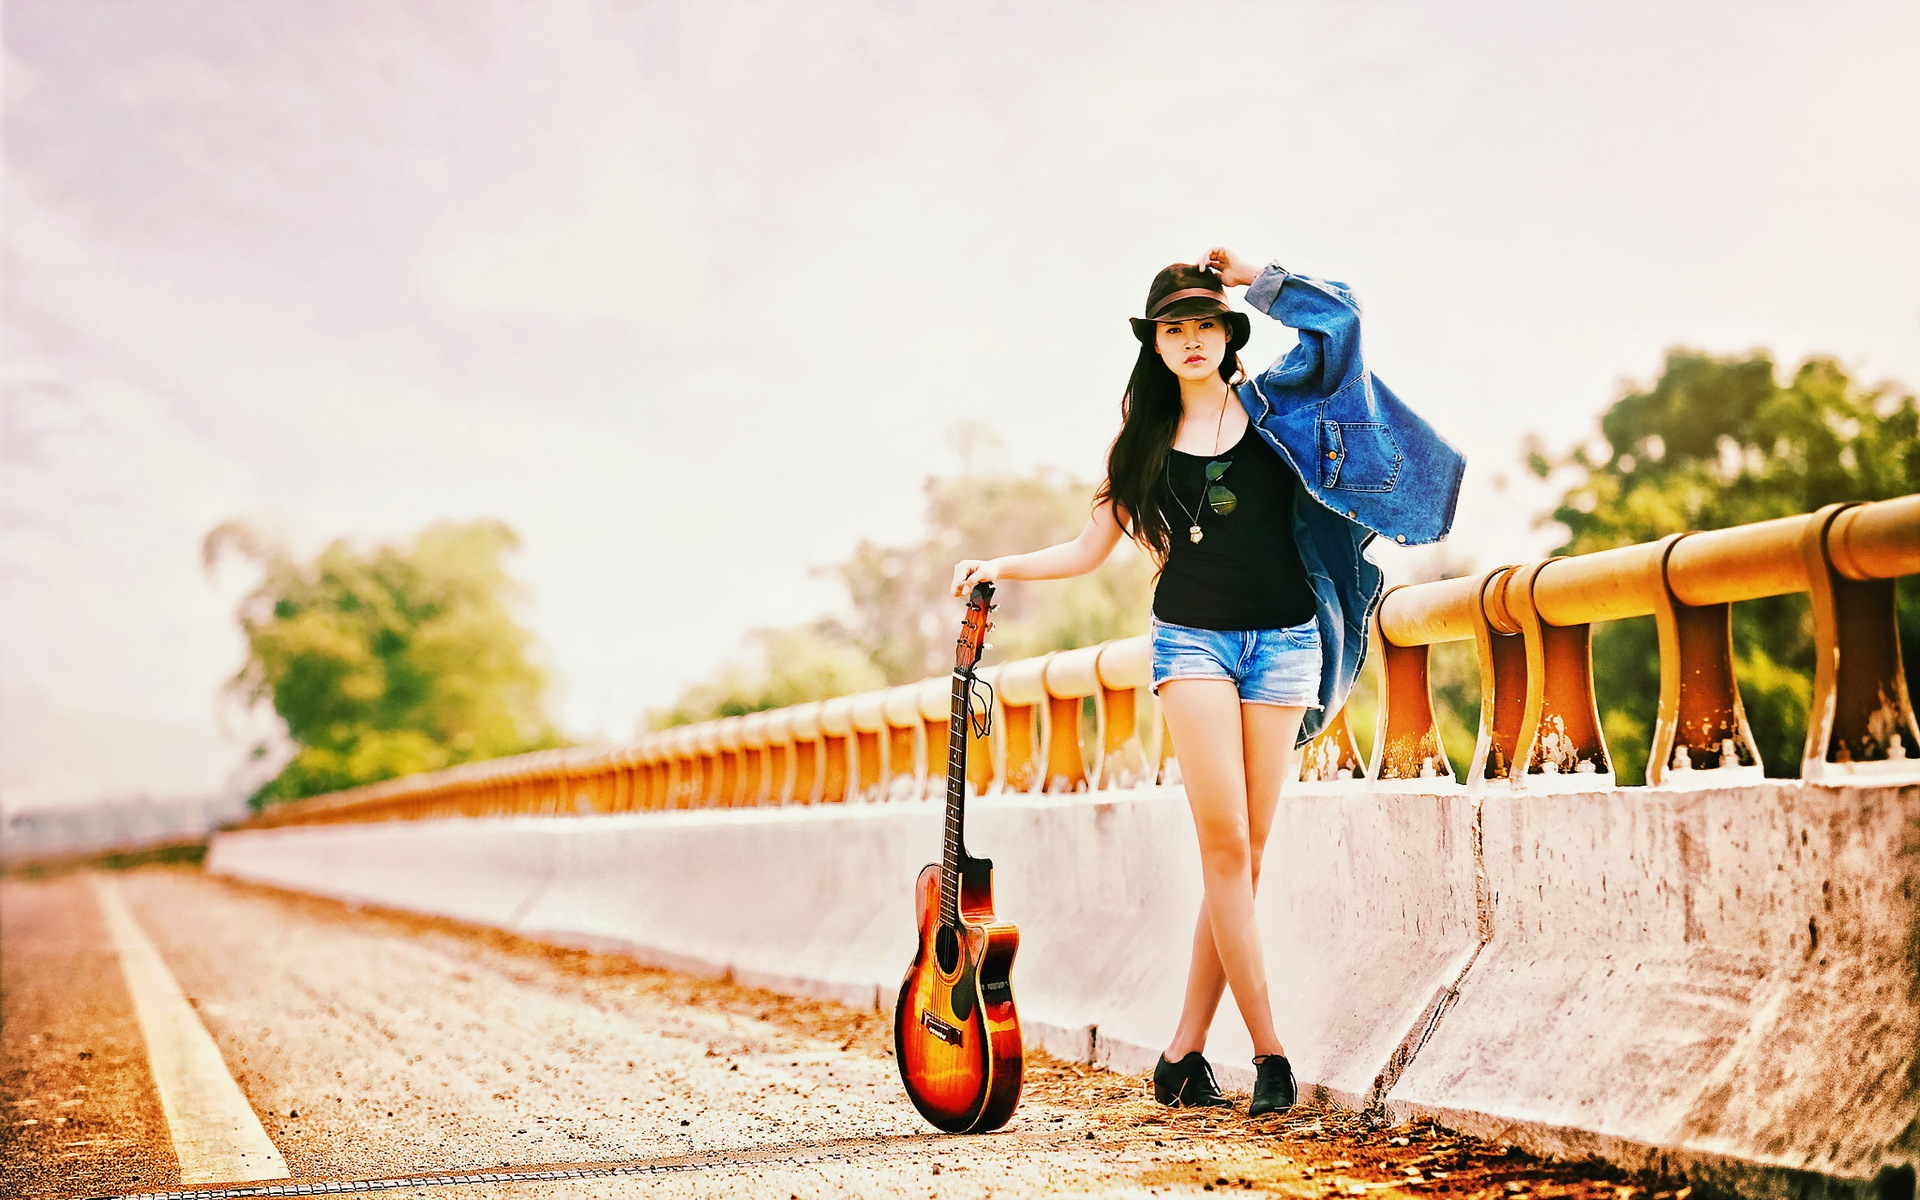 Guitar Wallpaper For Facebook Profile Girl Girl Guitar Music Mood G Wallpaper 1920x1200 162780